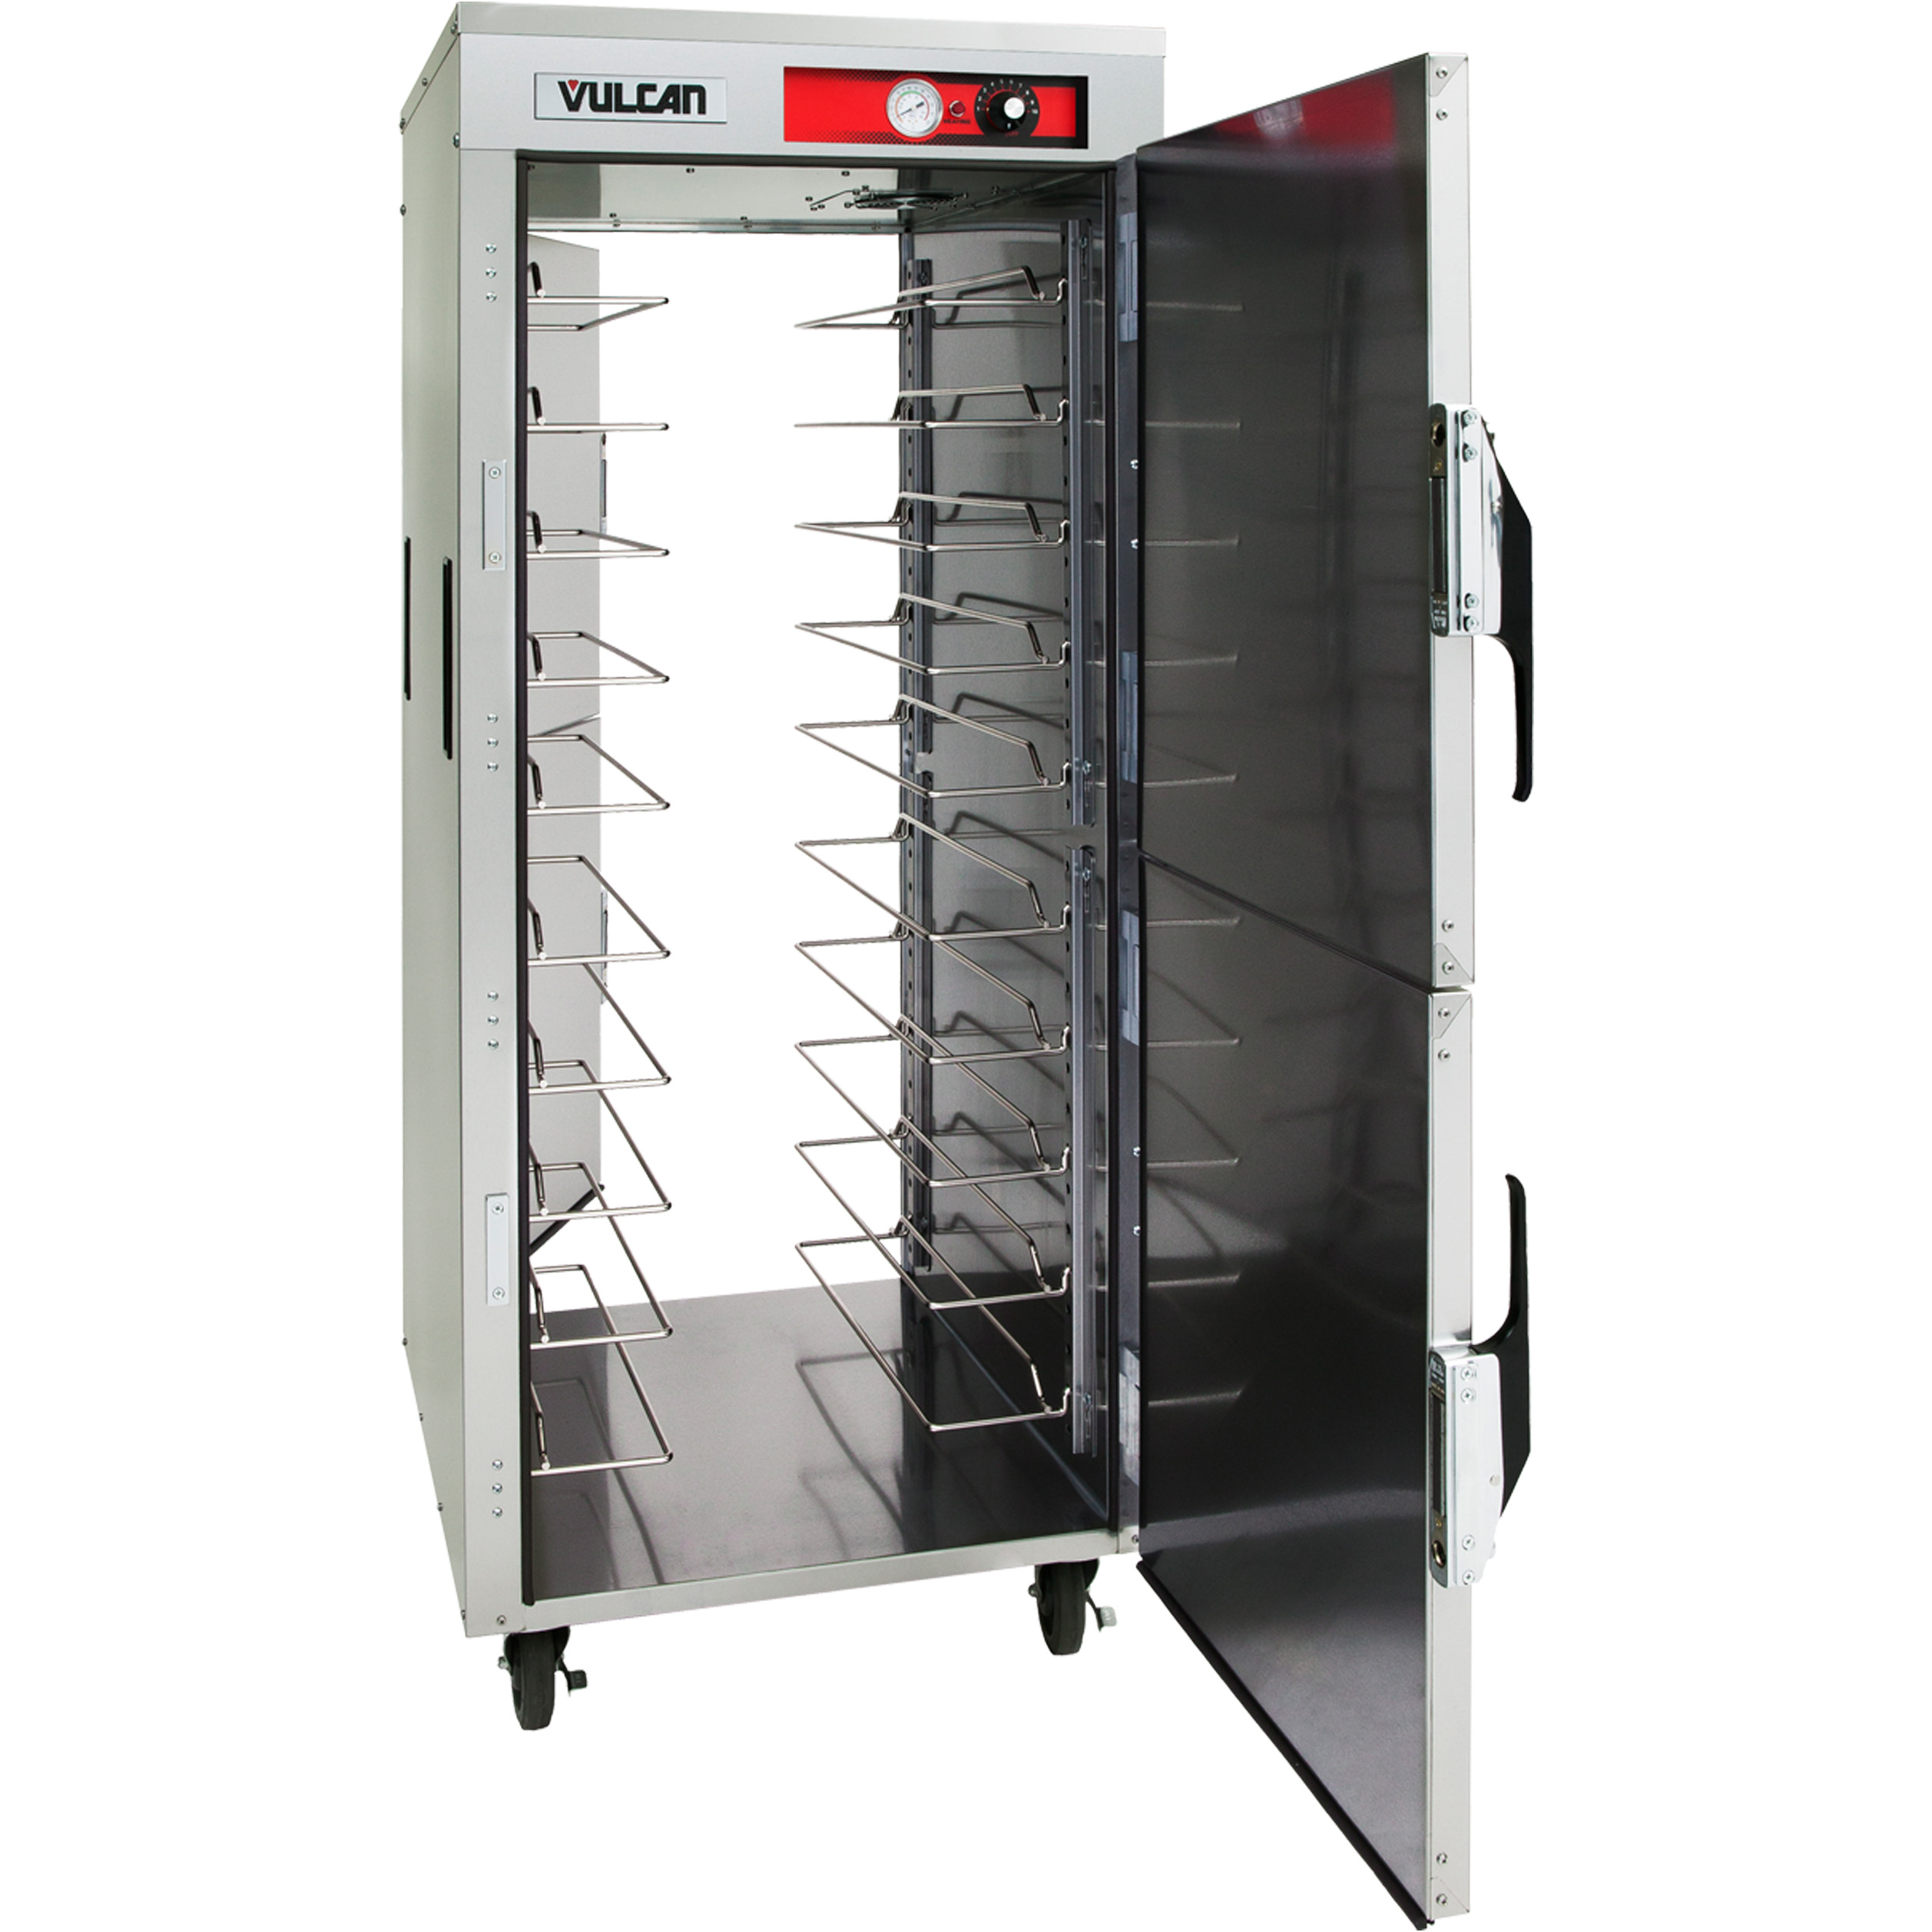 Vulcan VPT7LL heated cabinet, mobile, pass-thru